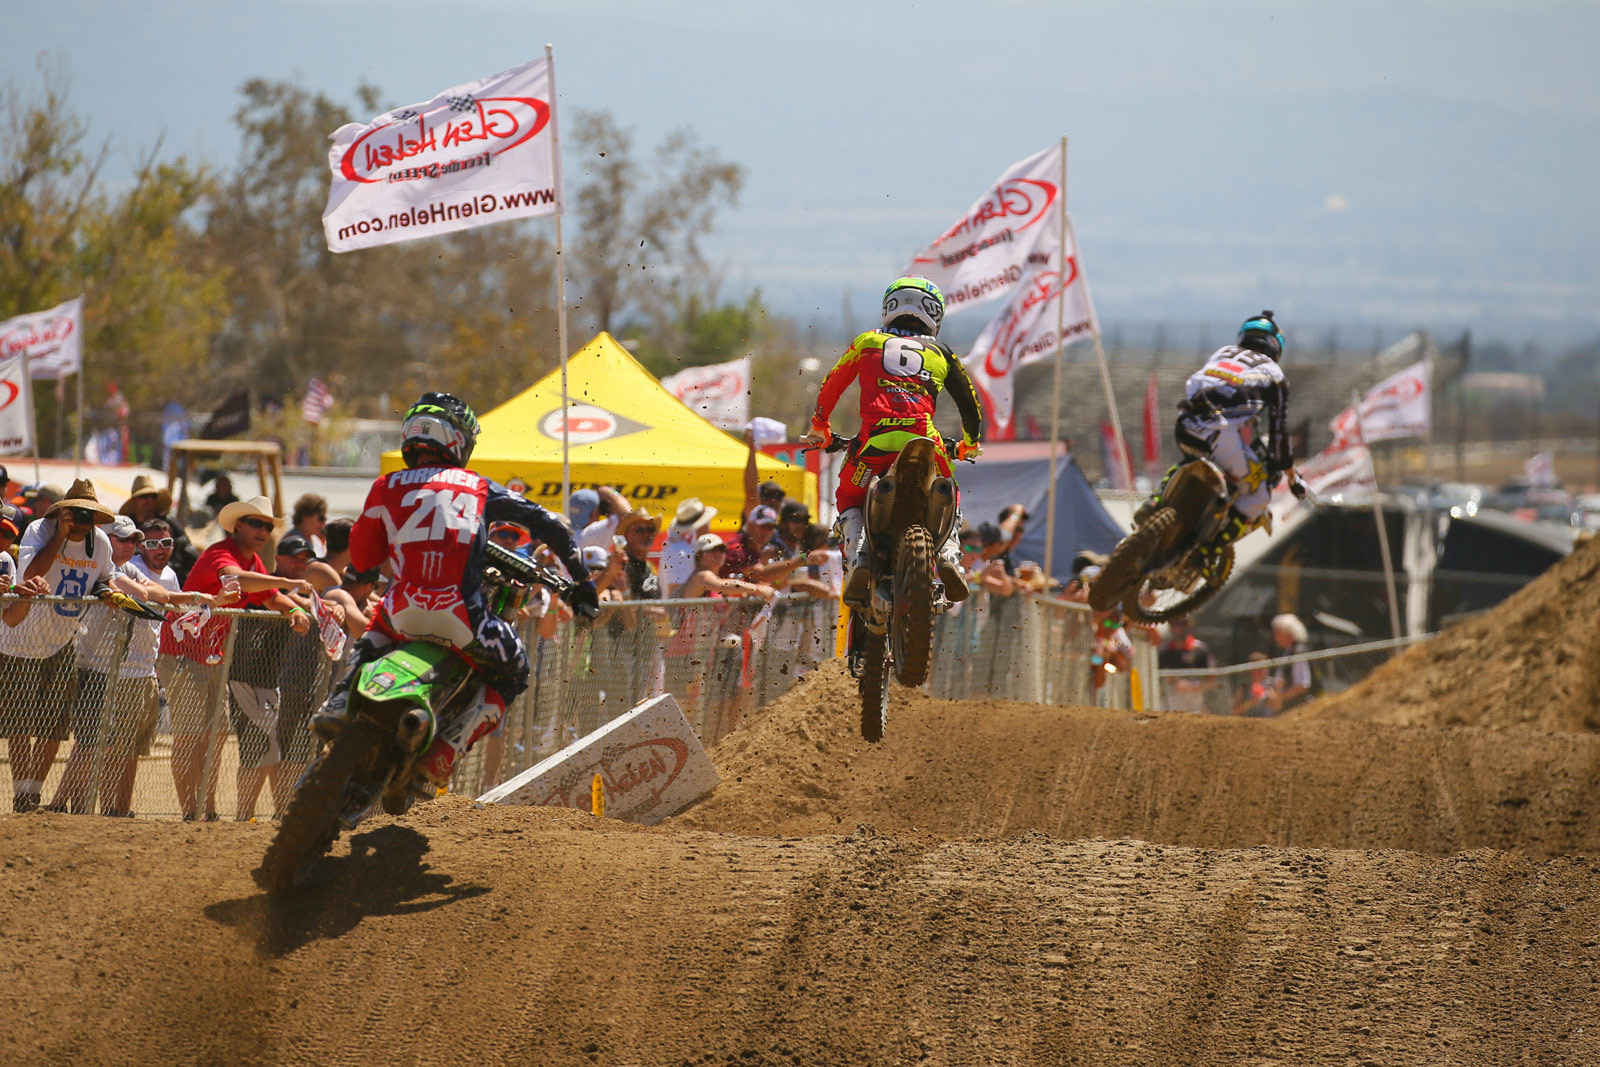 Max Anstie, Jeremy Martin, and Austin Forkner - Photo Blast: MXGP of the USA - Motocross Pictures - Vital MX